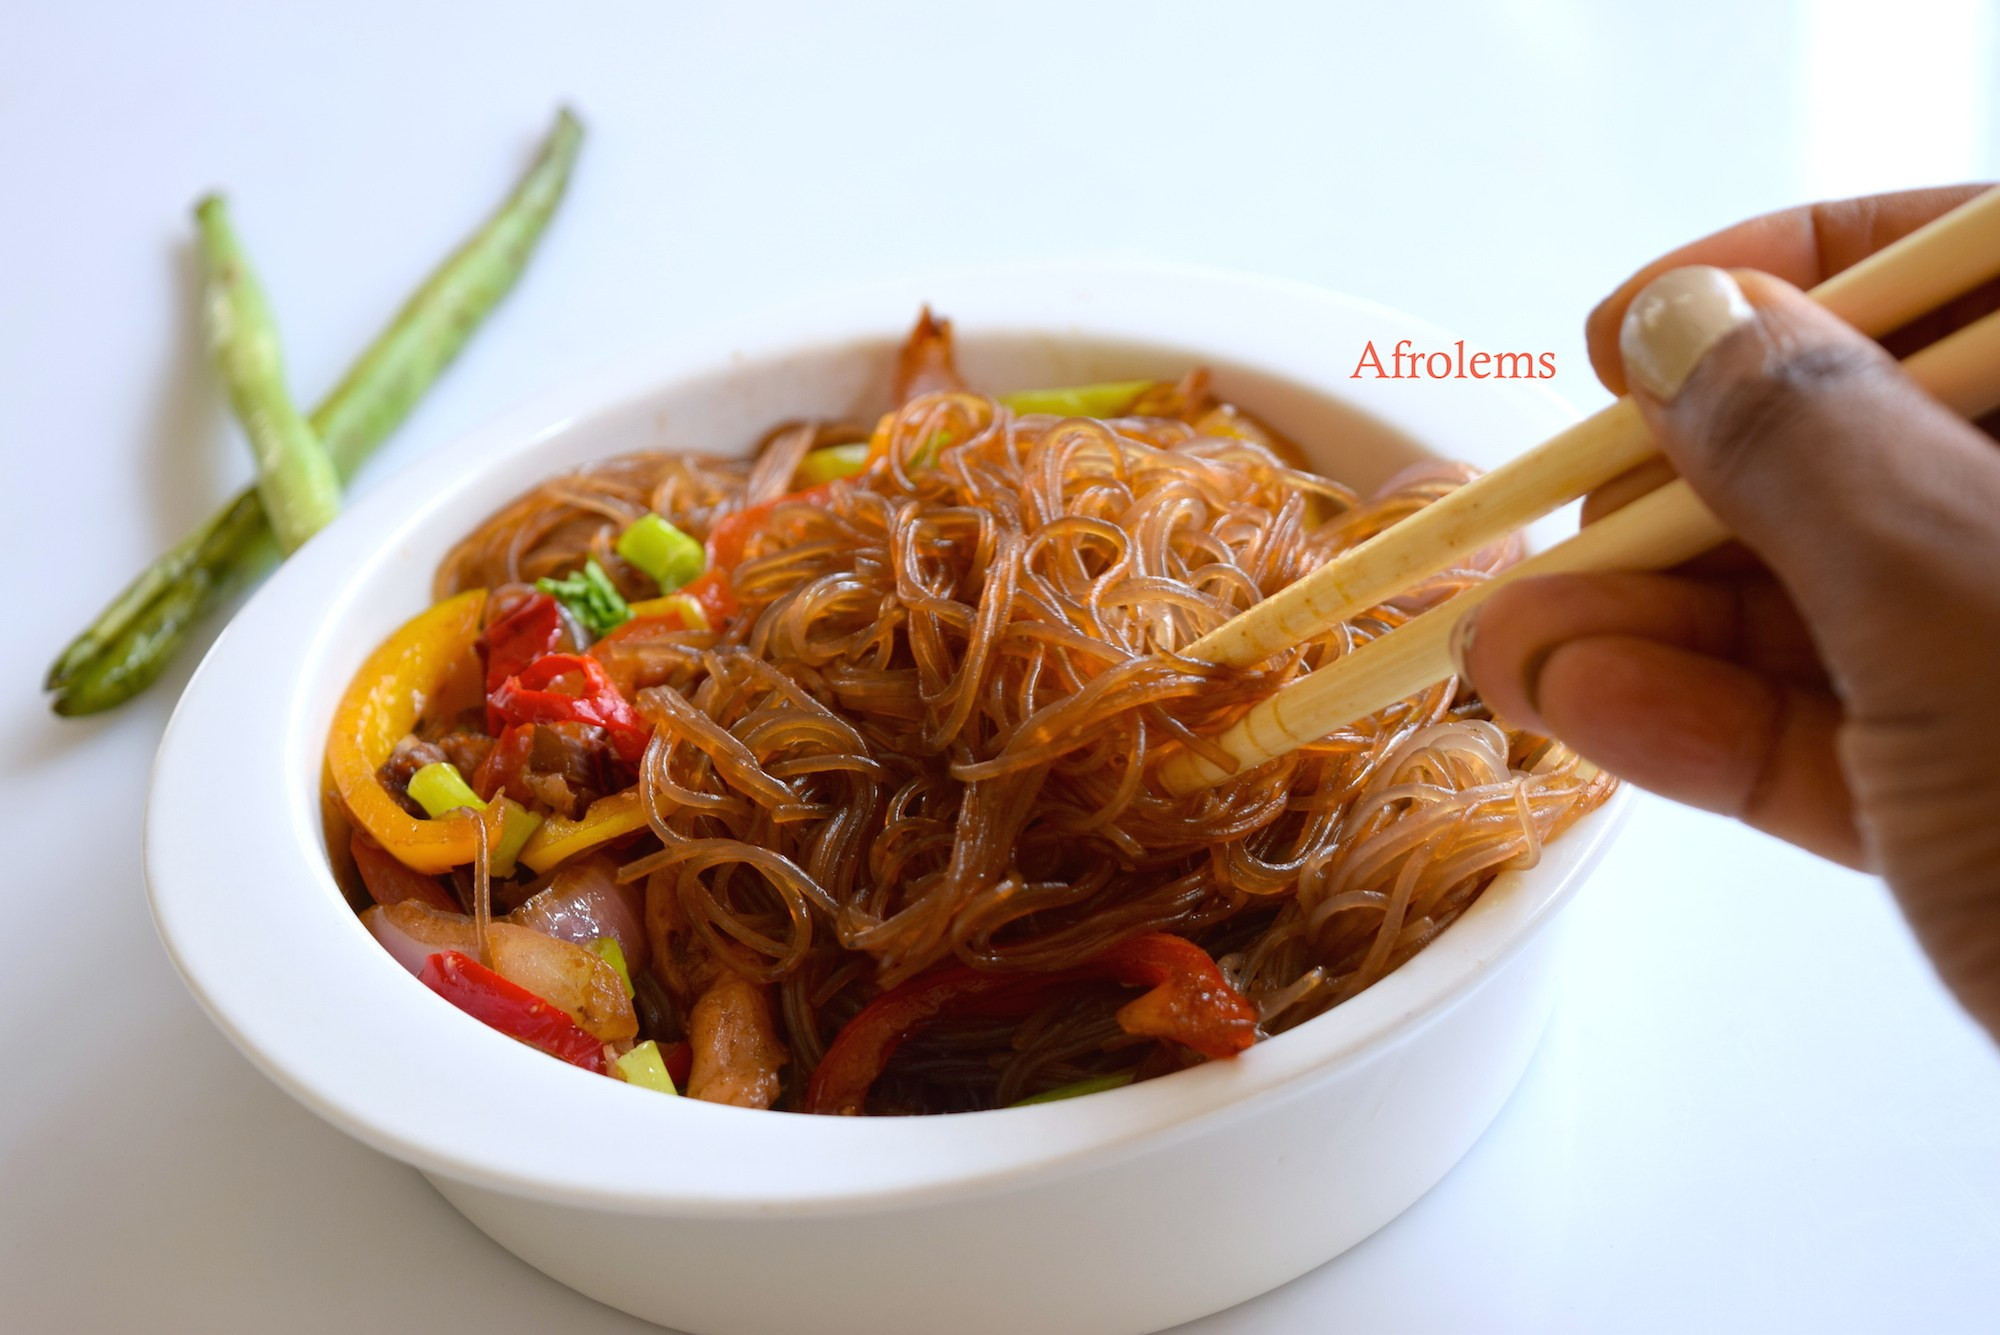 How To Make Chinese Noodles  Stir Fried Noodles with Chicken Afrolems Nigerian Food Blog